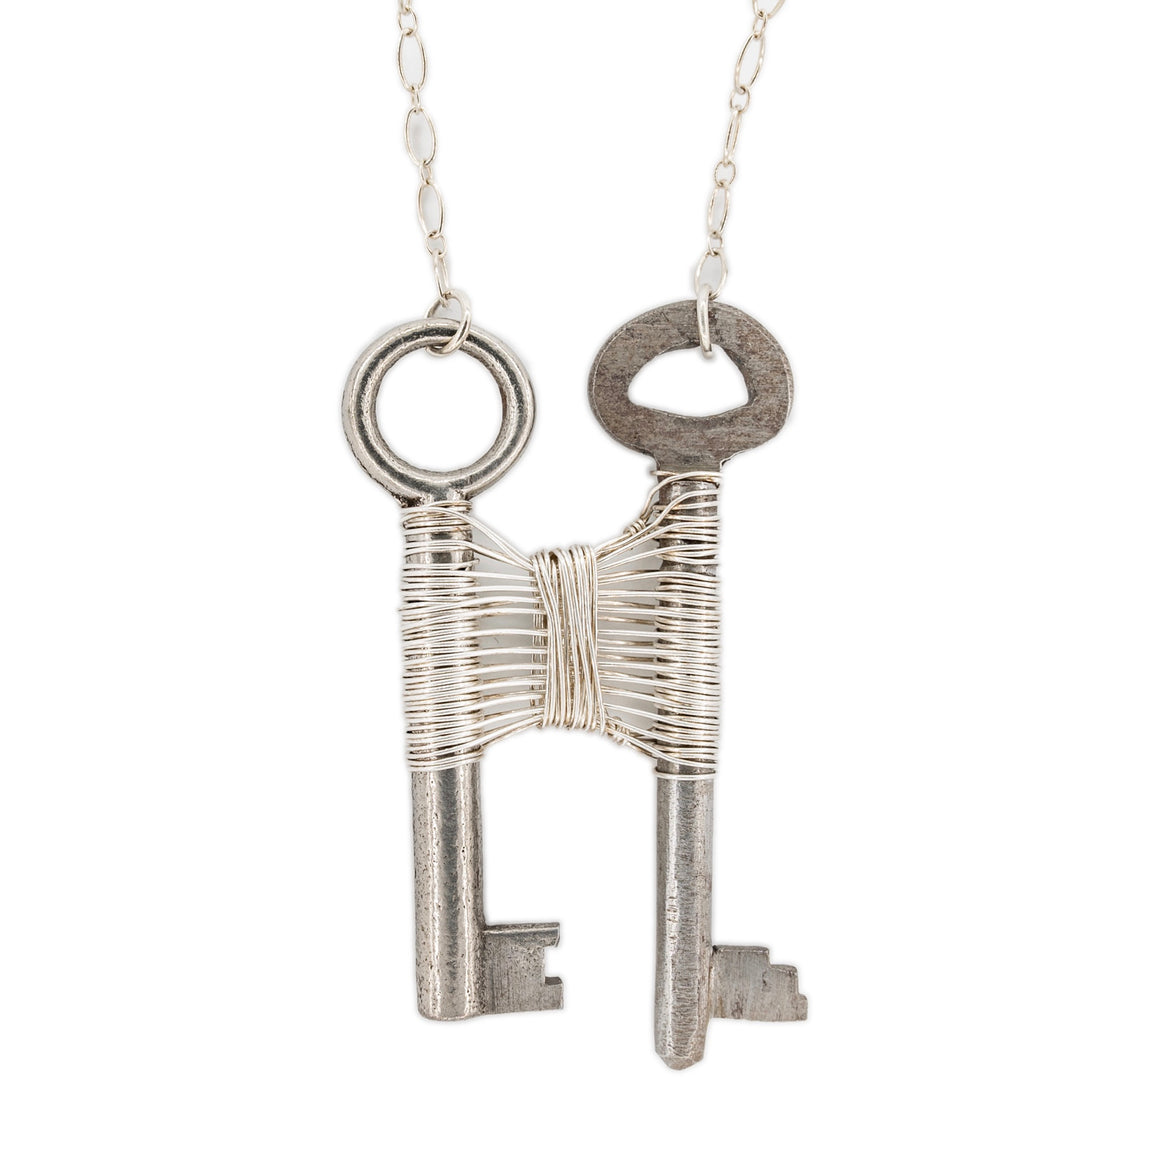 Woven Silver Vintage Skeleton Key Pendant on Silver Necklace by OSJ in Tucson Arizona